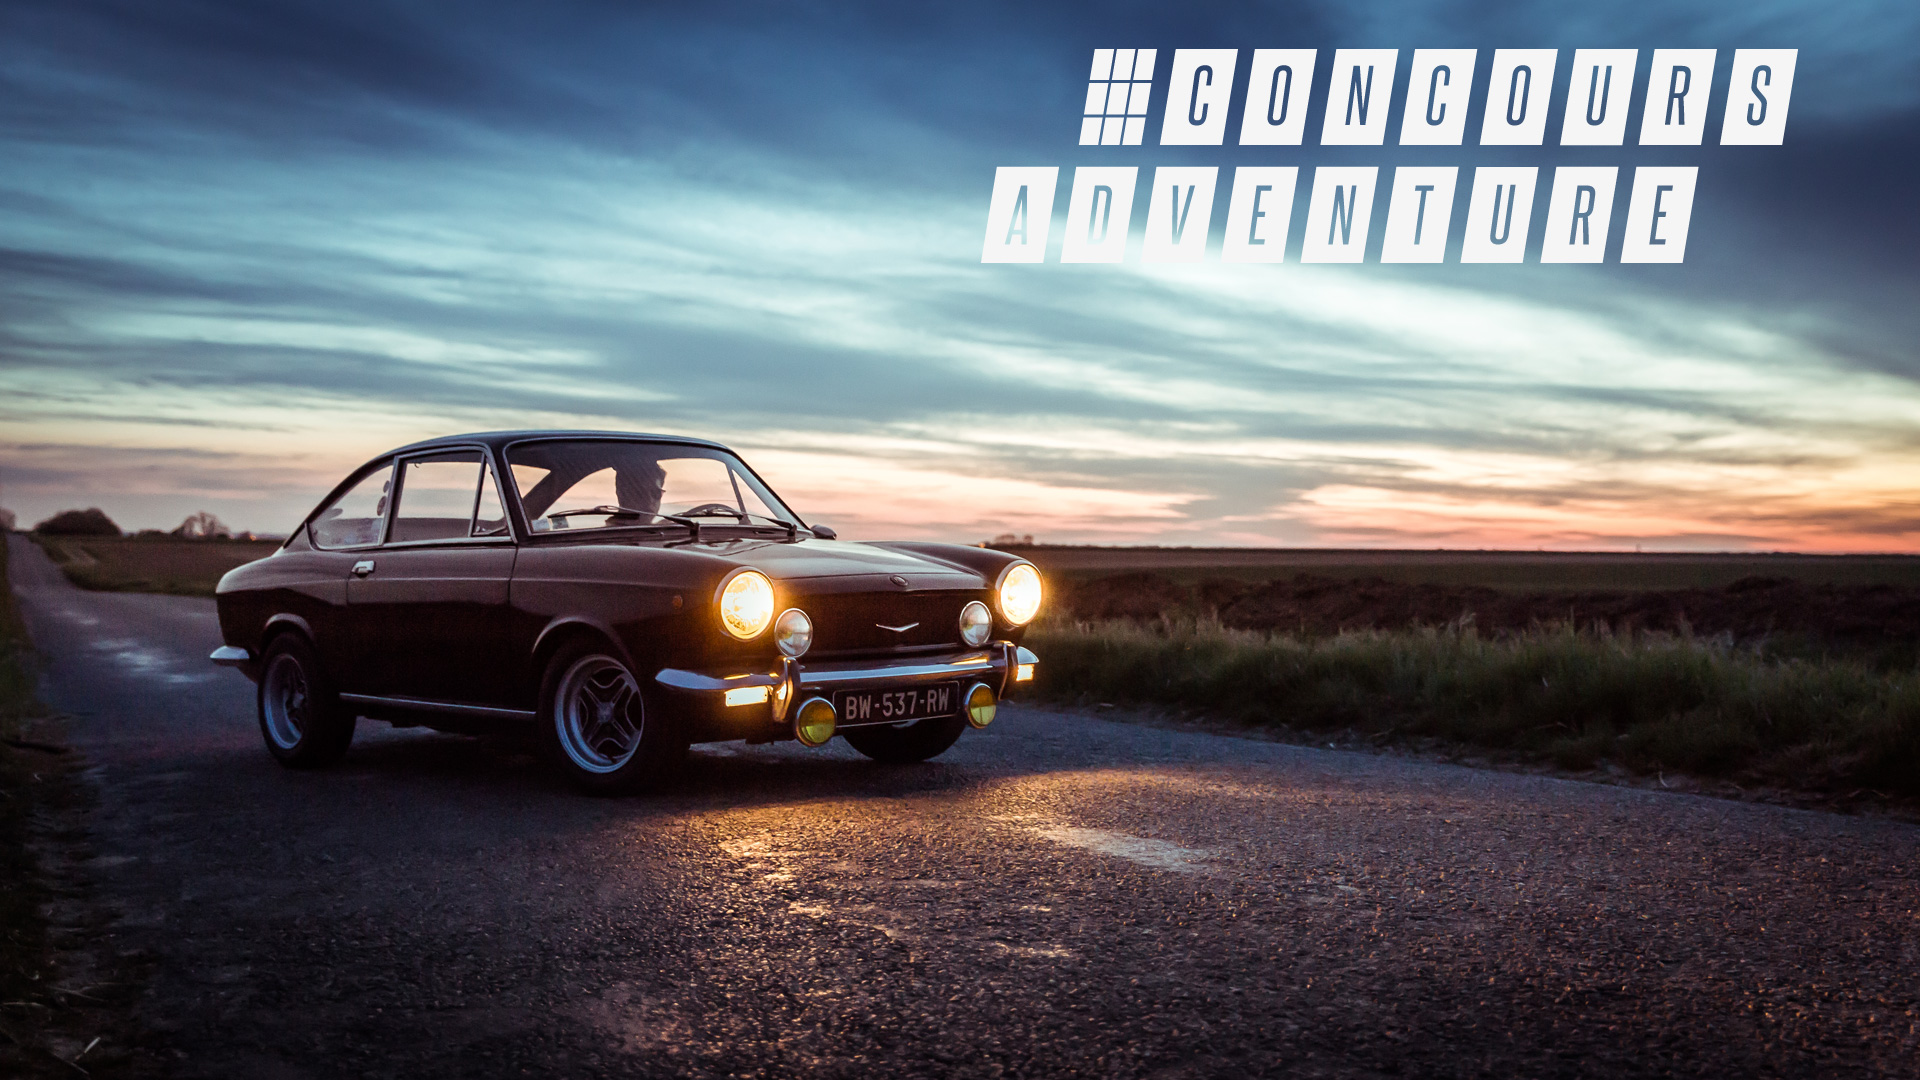 This Fiat 850 Sport Was A Concours Adventure